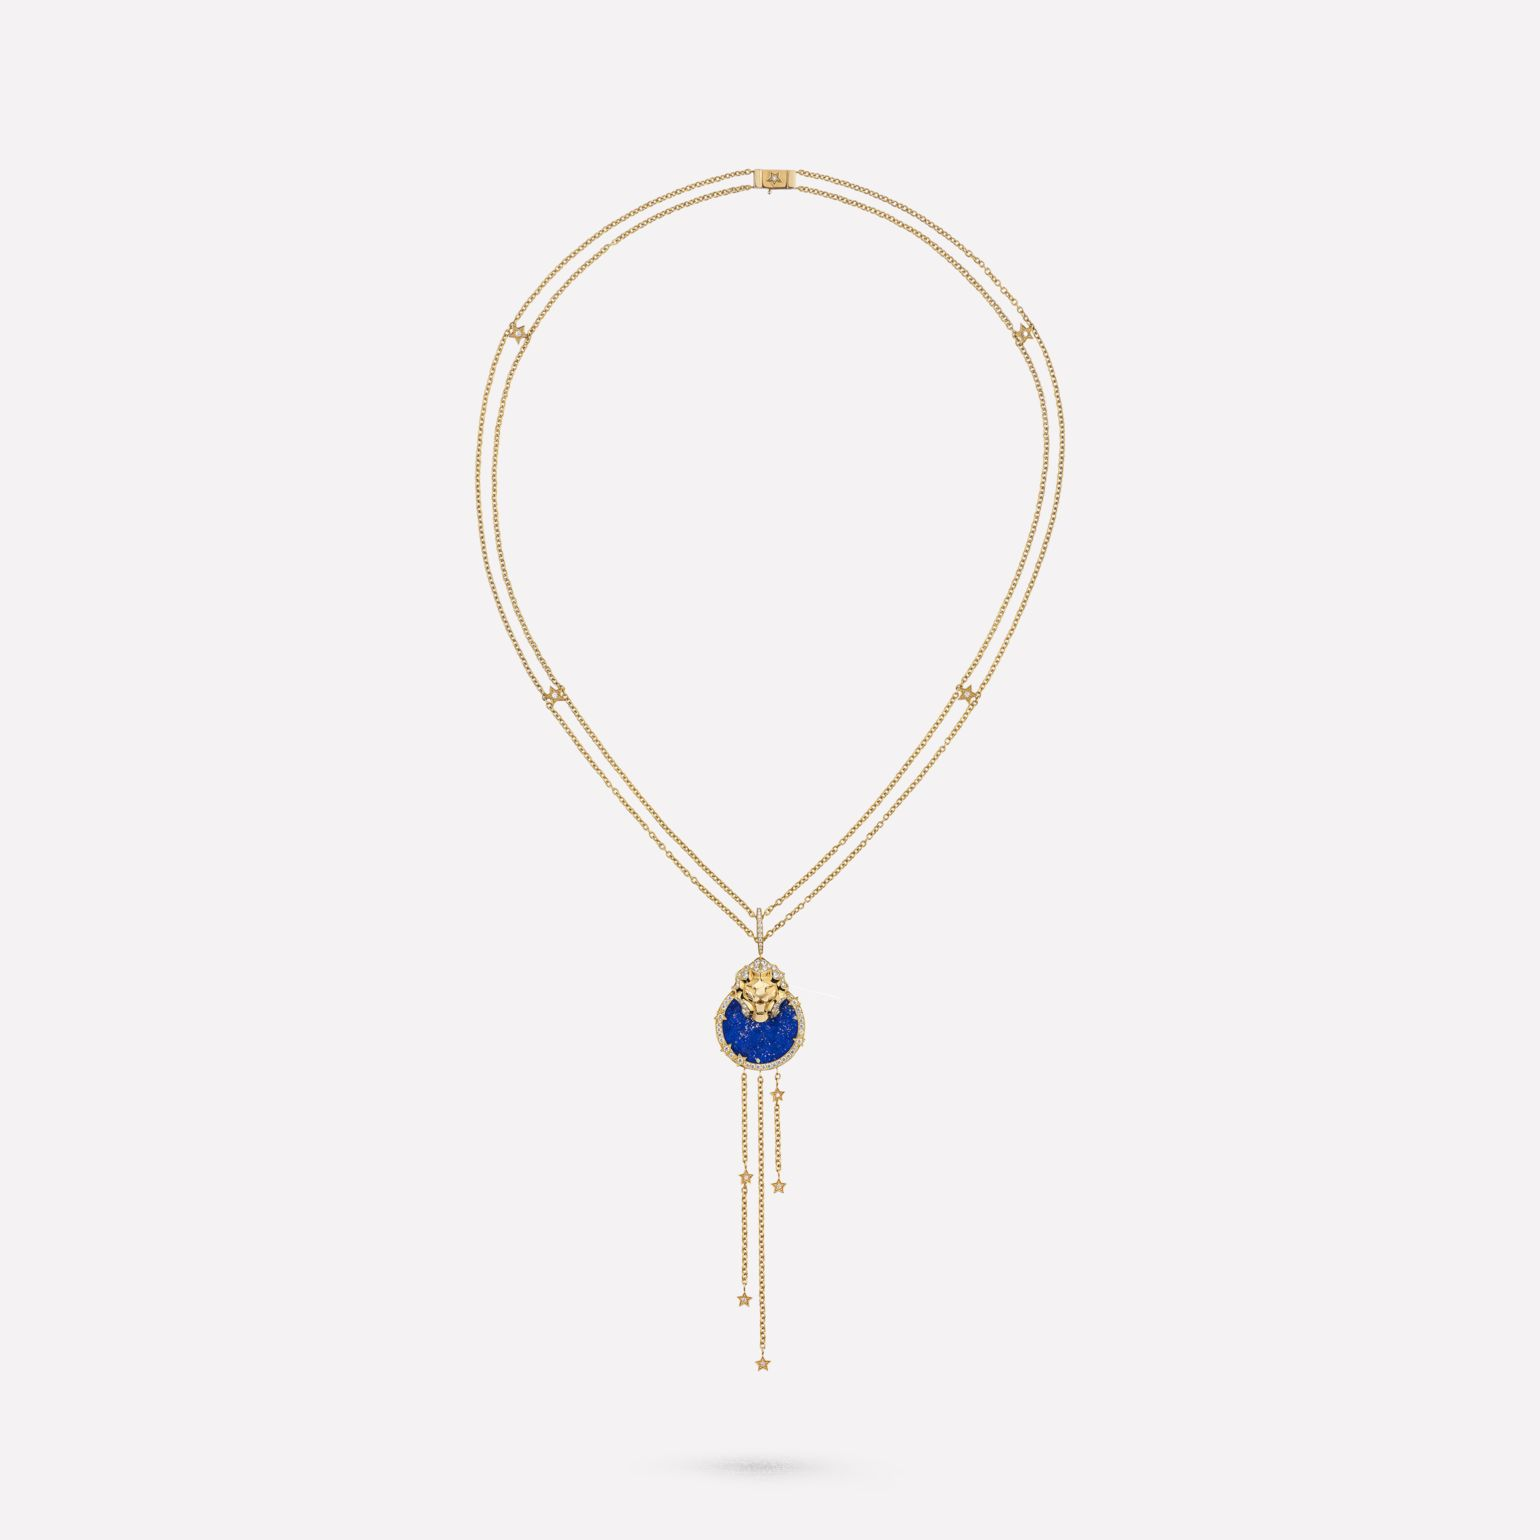 Lion Médaille long necklace 18K yellow gold, diamonds, lapis lazuli